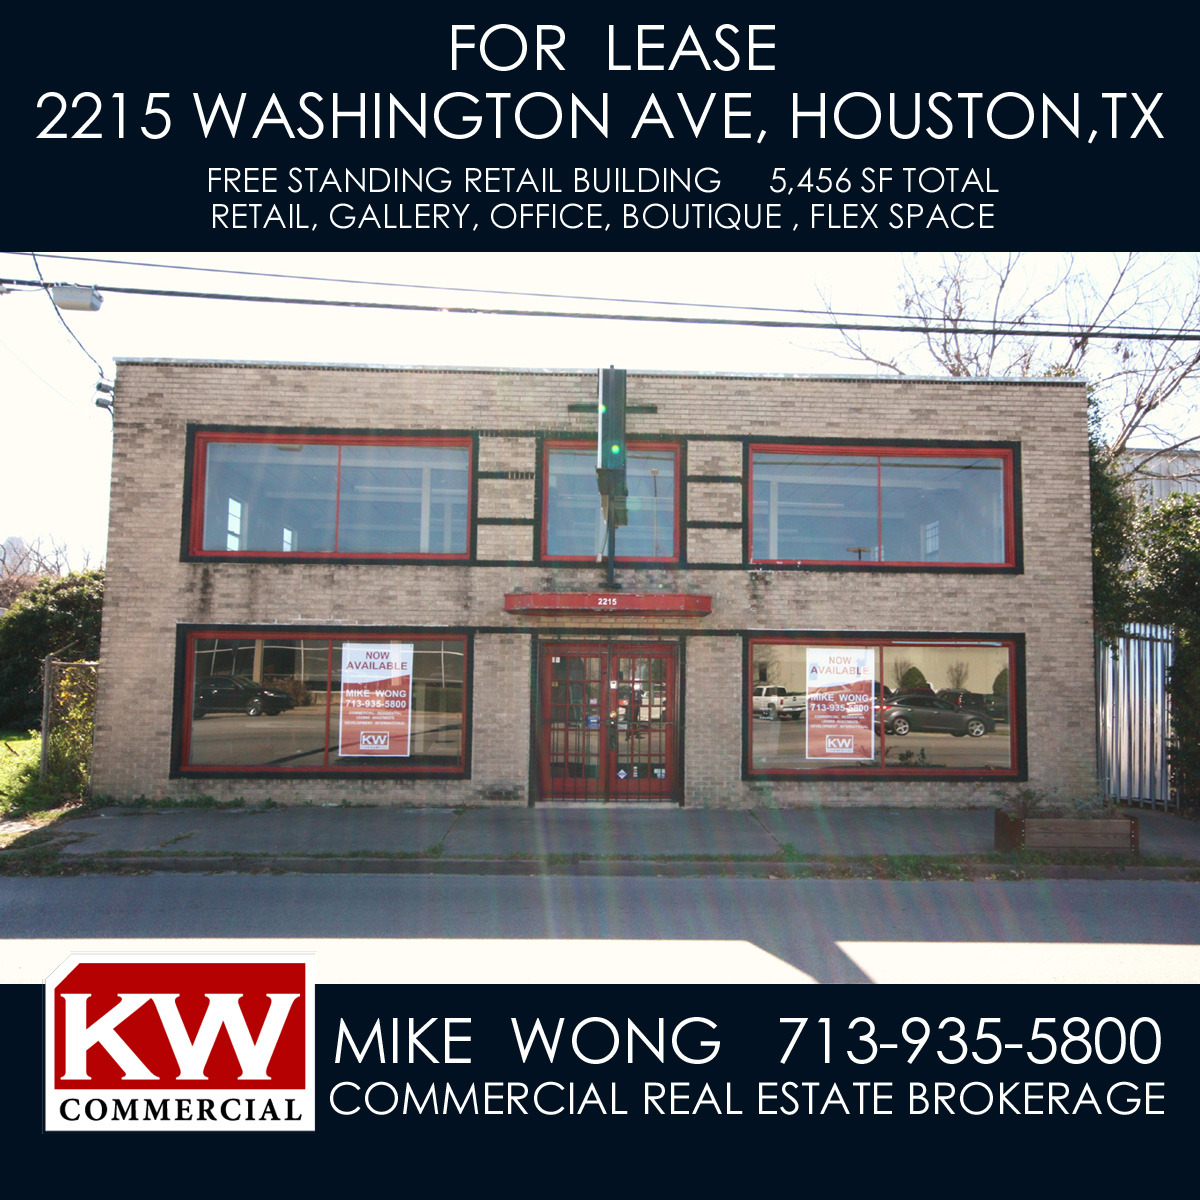 For Lease: 2215 Washington Ave, Houston Heights Commerc